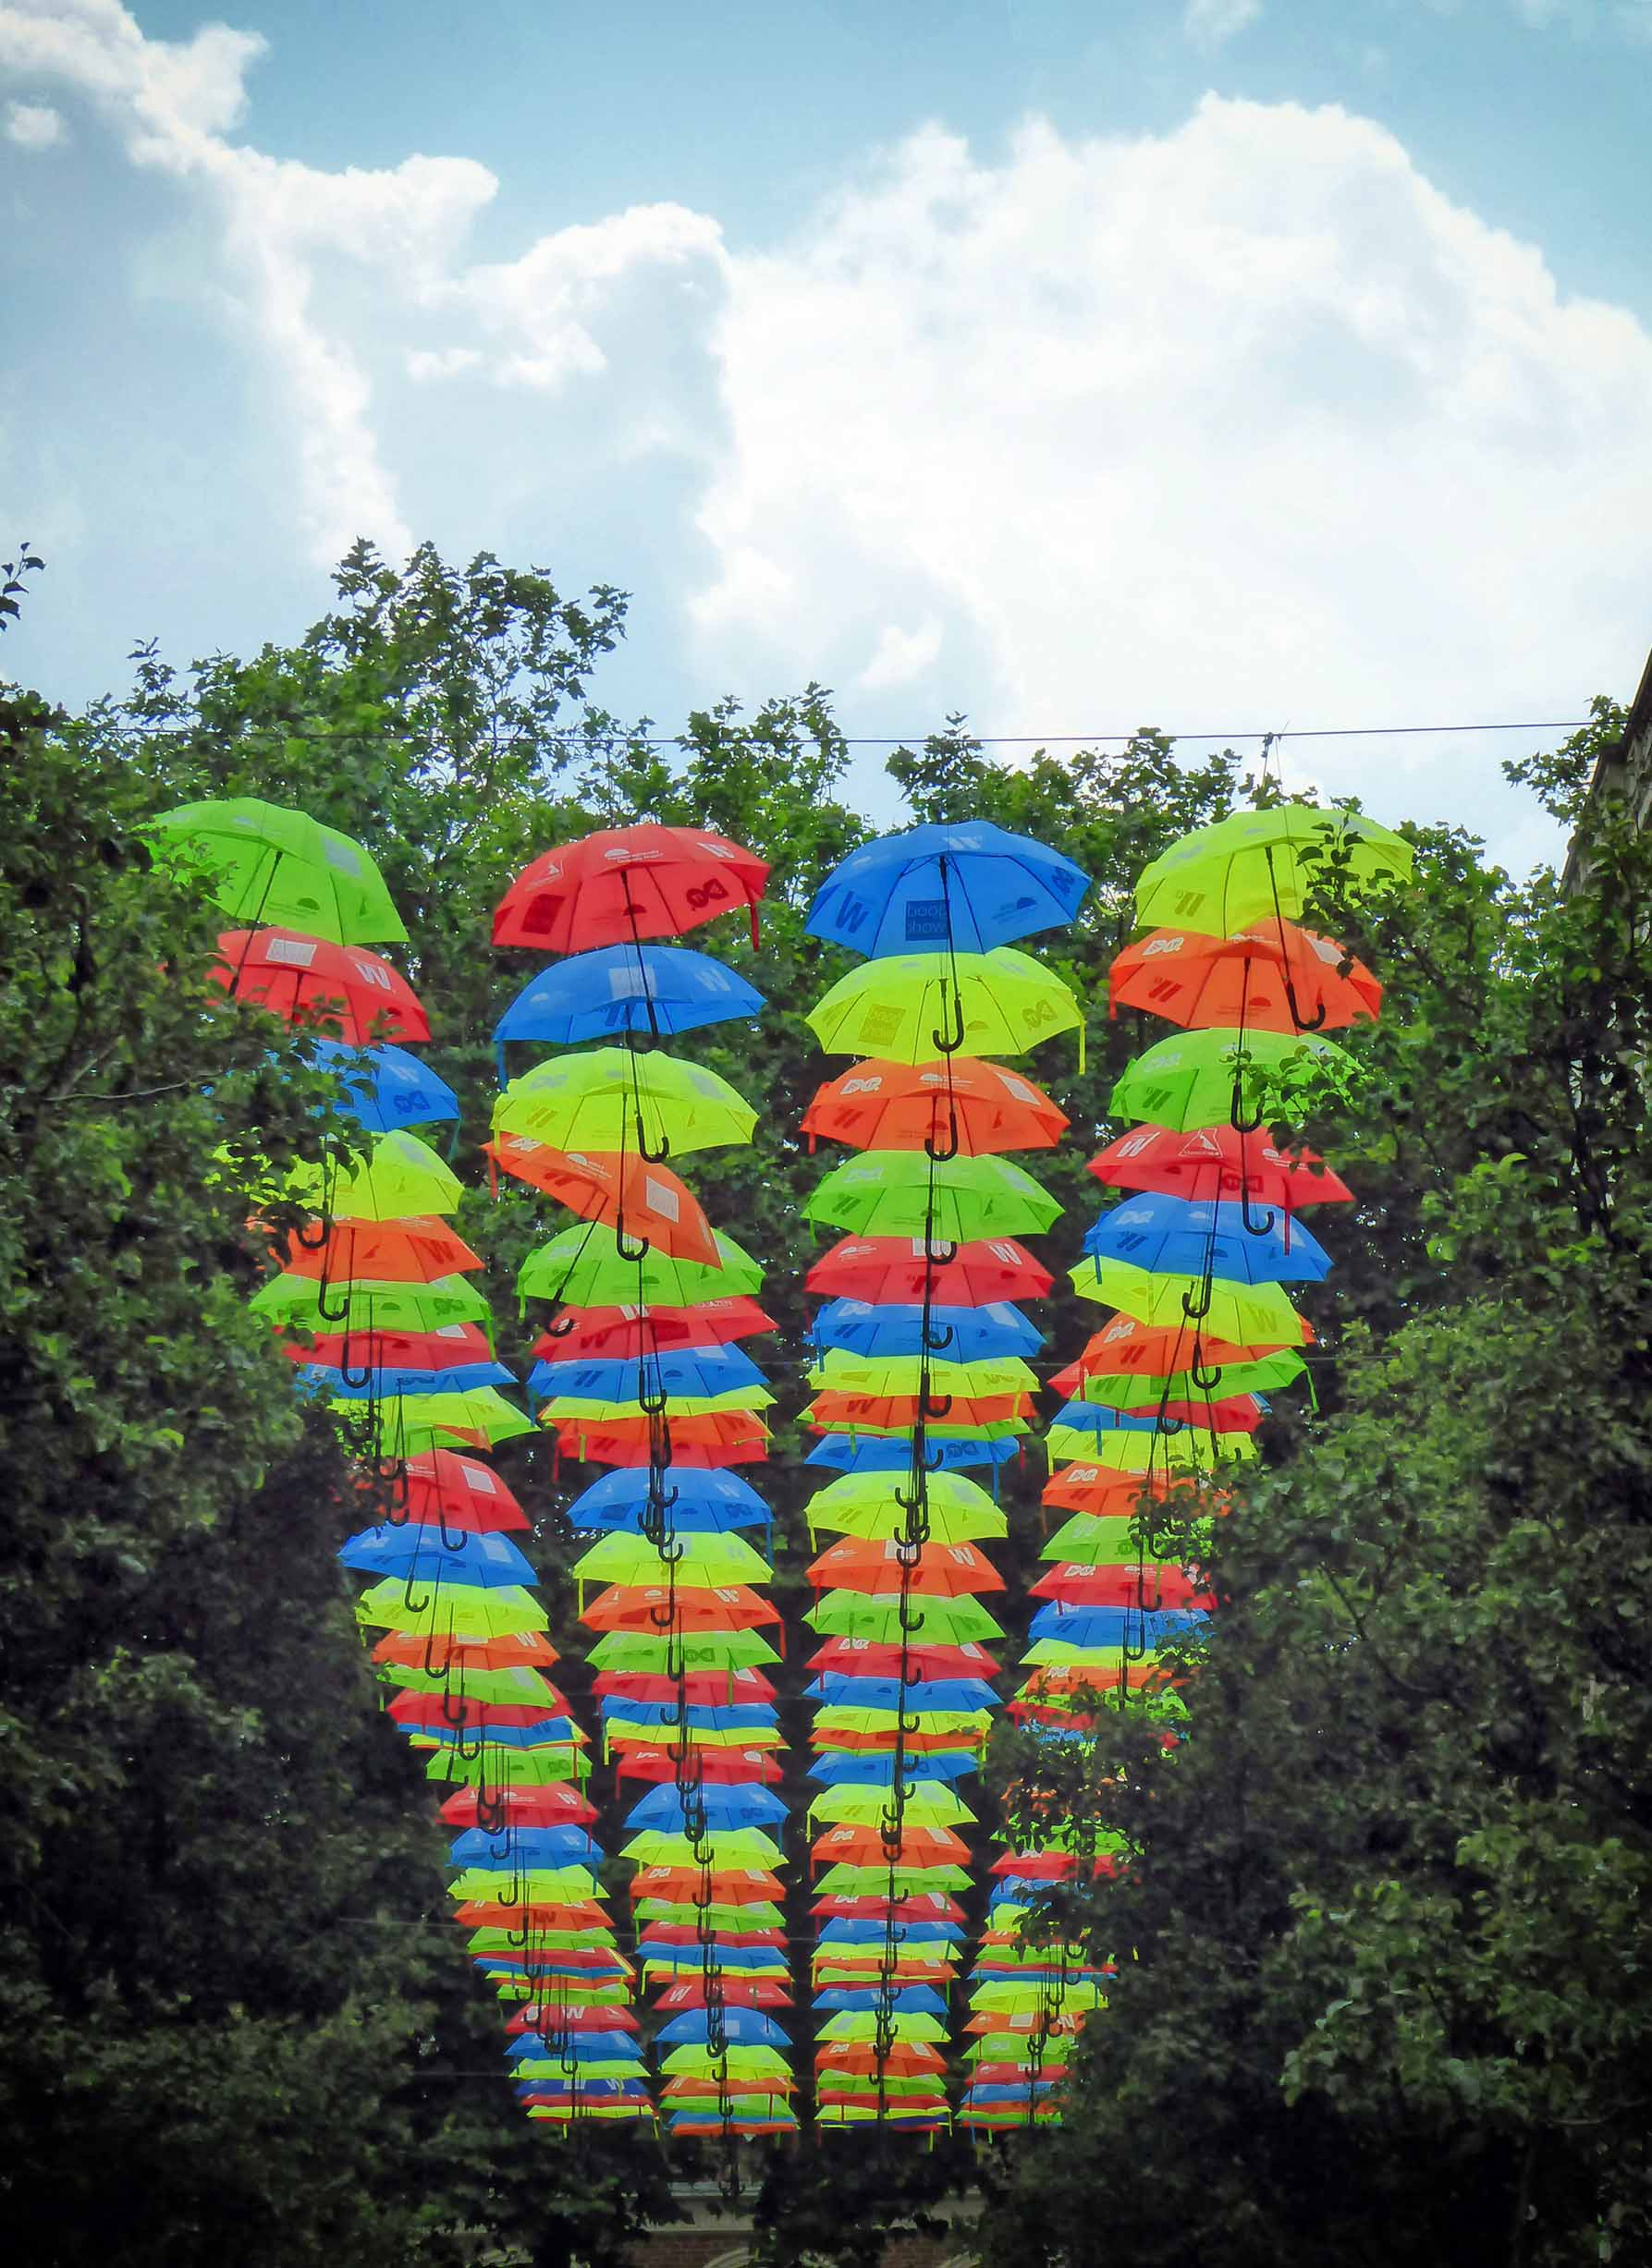 Brightly coloured umbrellas suspended among trees